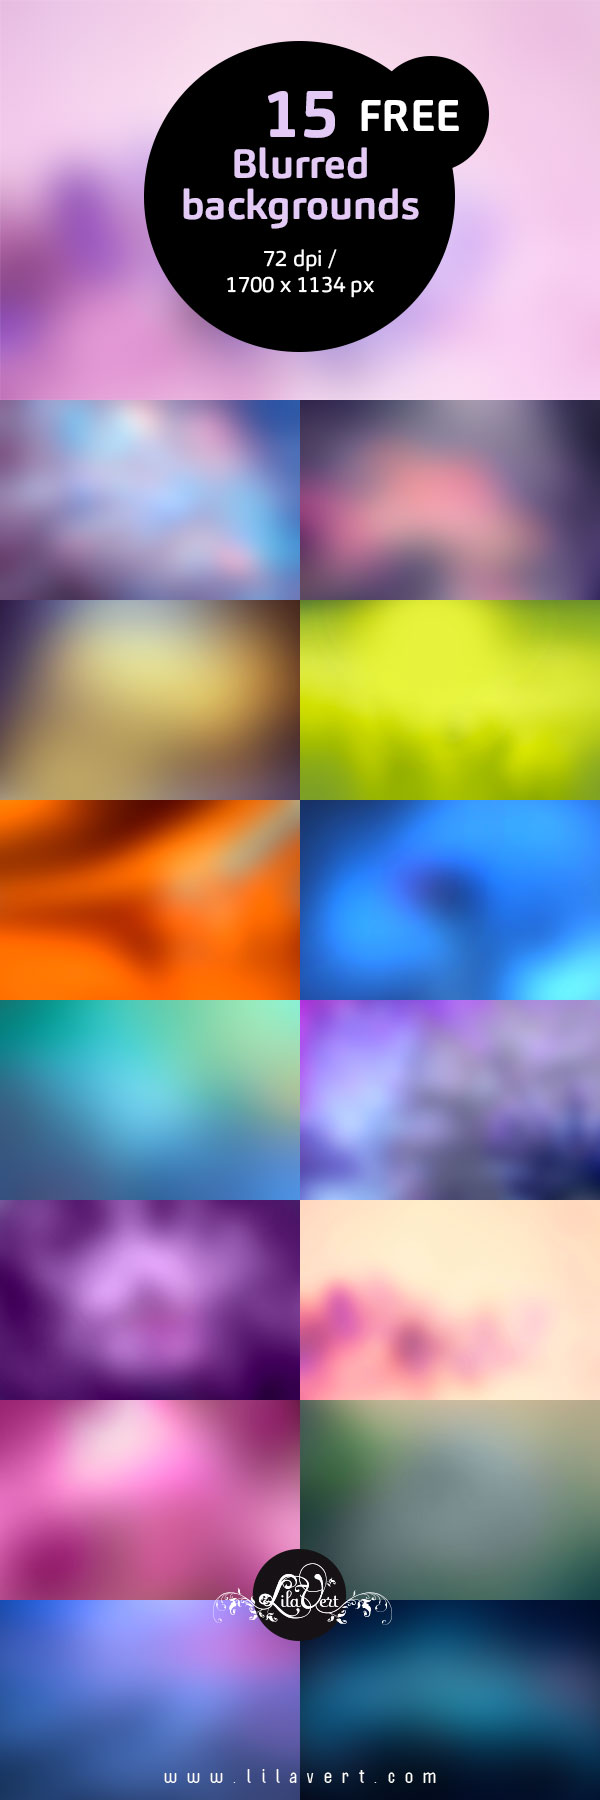 15 Free Blurred Backgrounds - 72 dpi